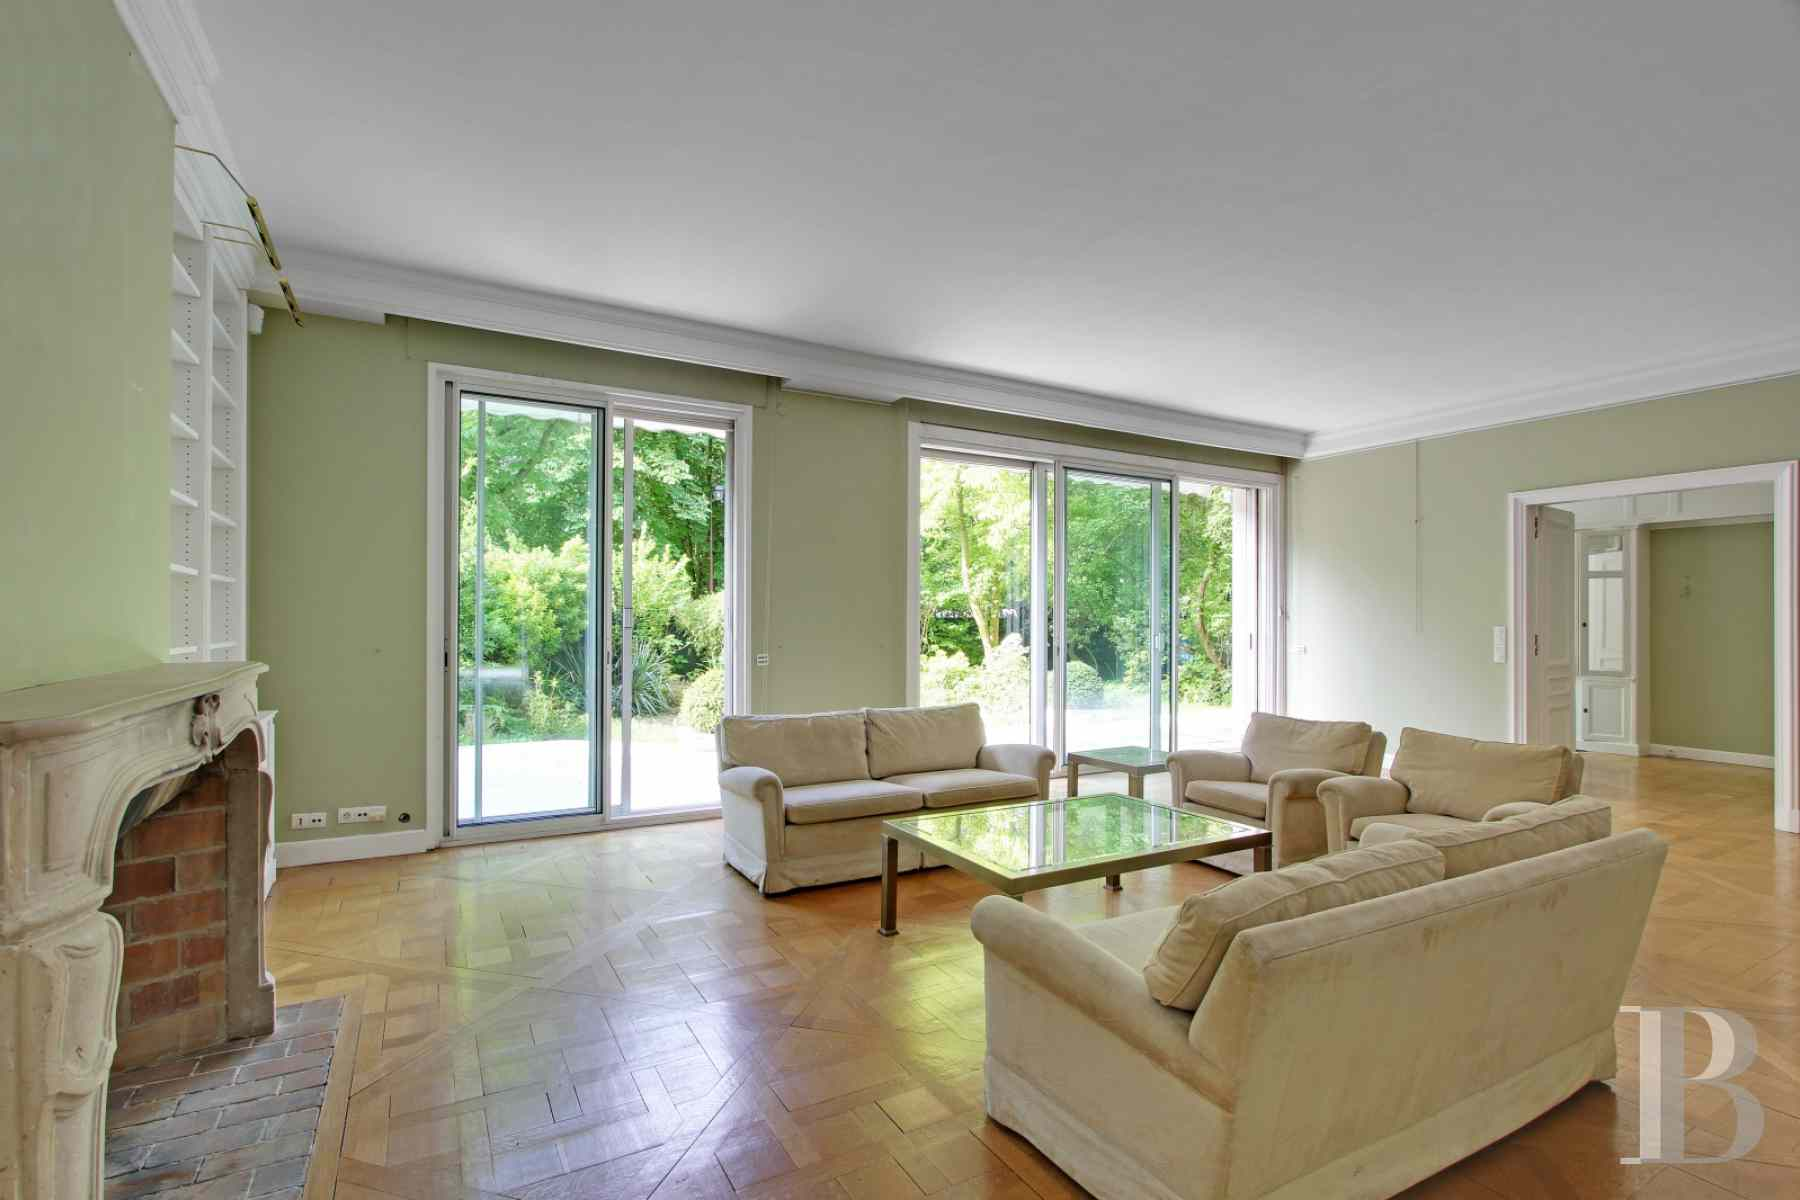 appartments for sale ile de france neuilly garden - 7 zoom